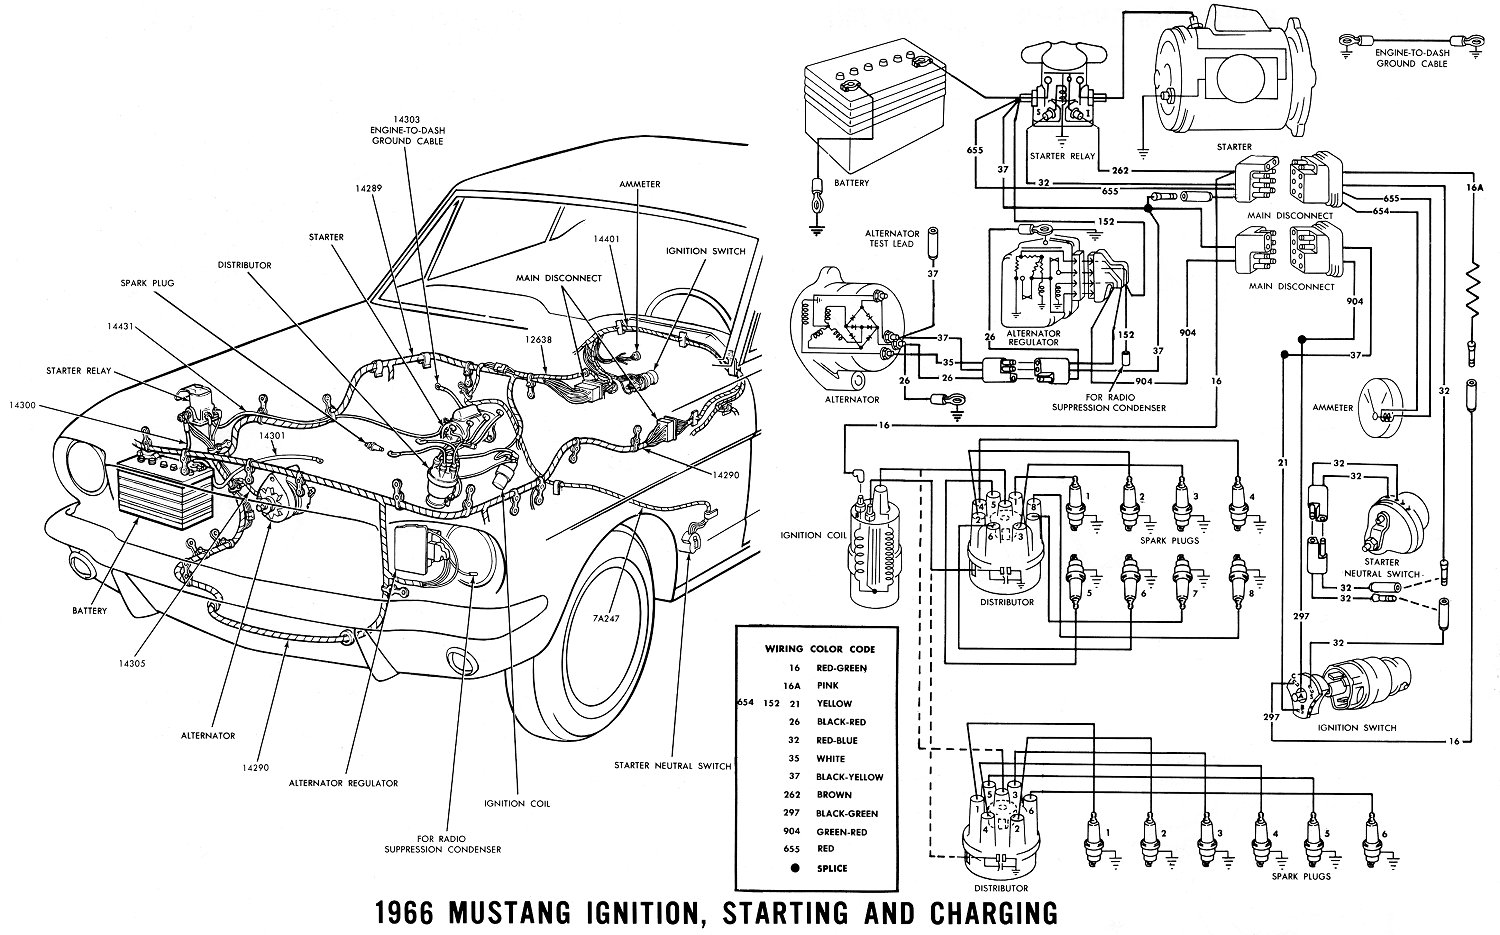 1967 Mustang Wiring Diagram FULL HD Version Wiring Diagram - MEAD-DIAGRAM .EMAILLEGYM.FRDiagram Database